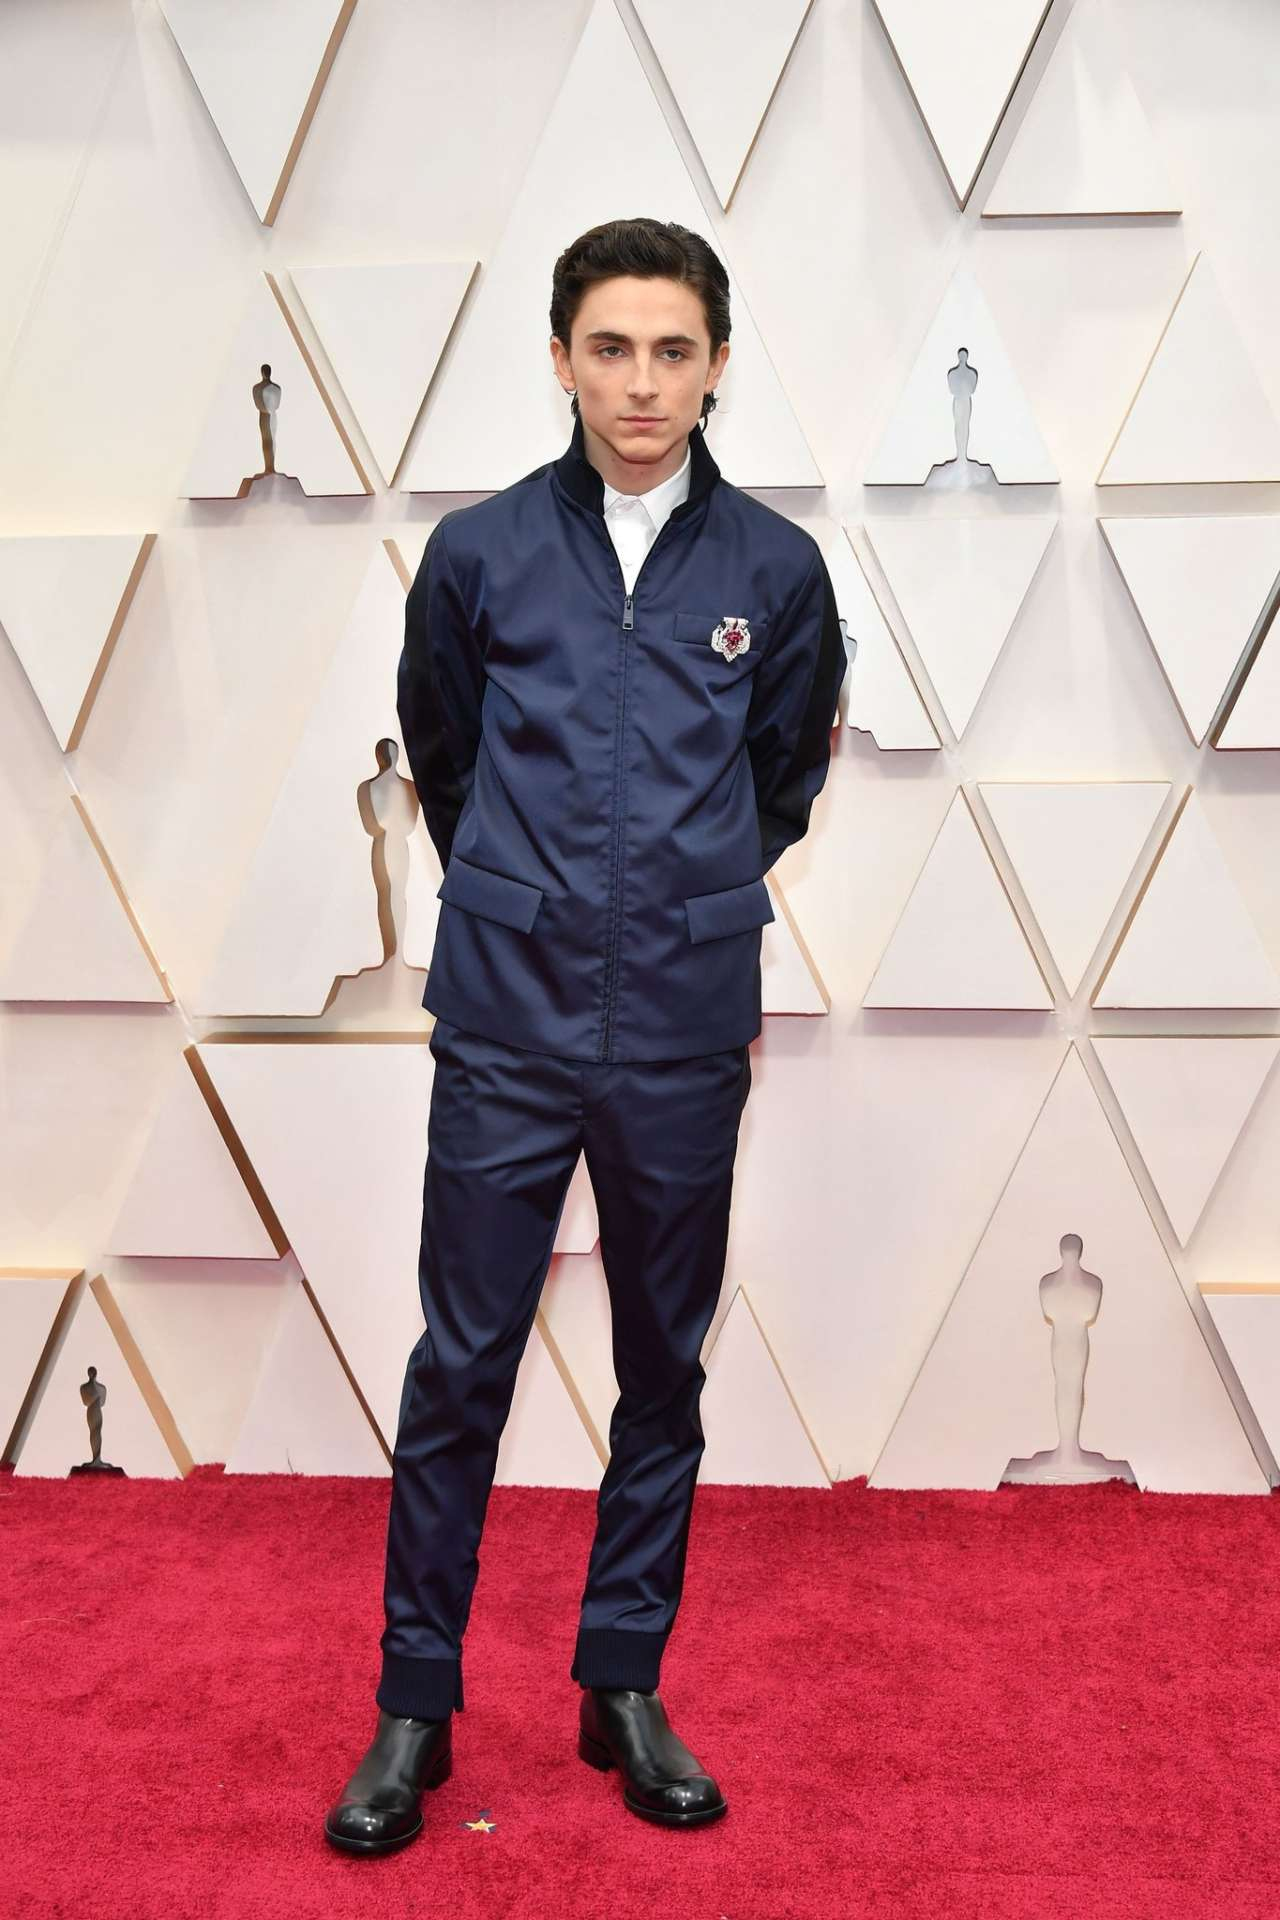 Timothée Chalamet in Prada and Cartier